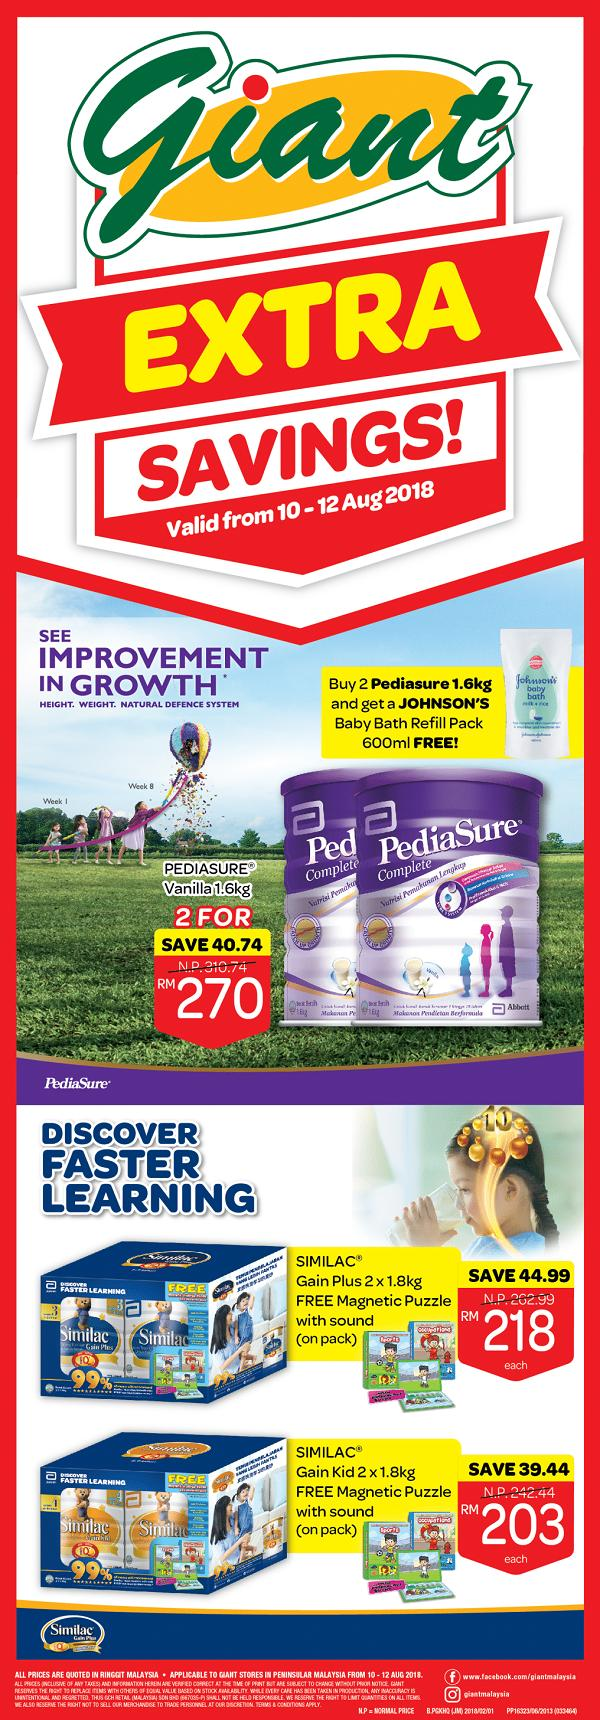 Giant Abbott Promotion (10 August 2018 - 12 August 2018)